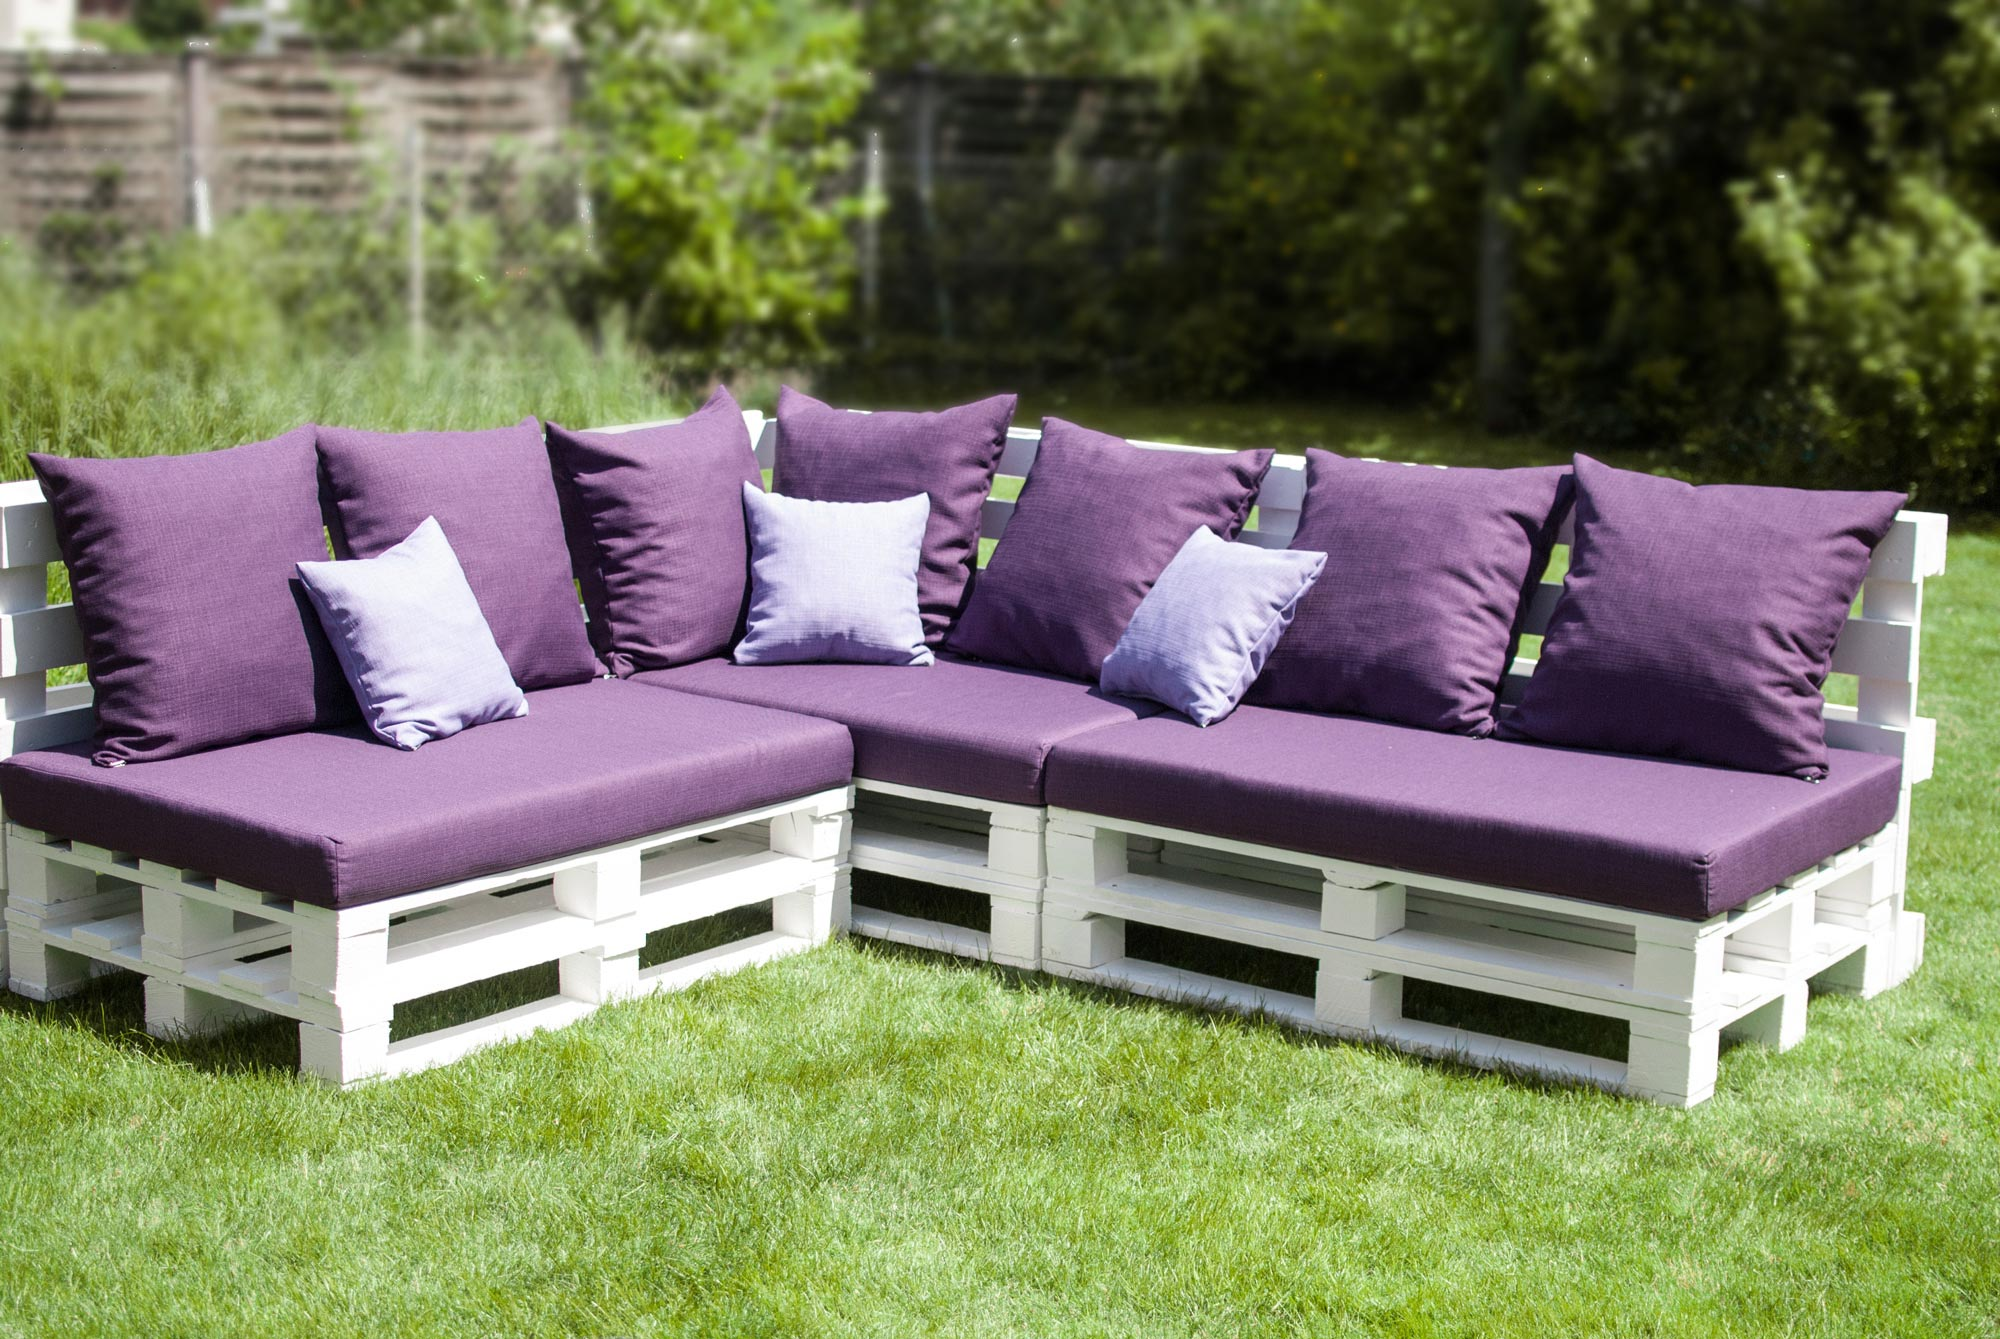 Lounge sofa outdoor selber bauen  DIY Outdoor Couch › Wohn-Guide Blog